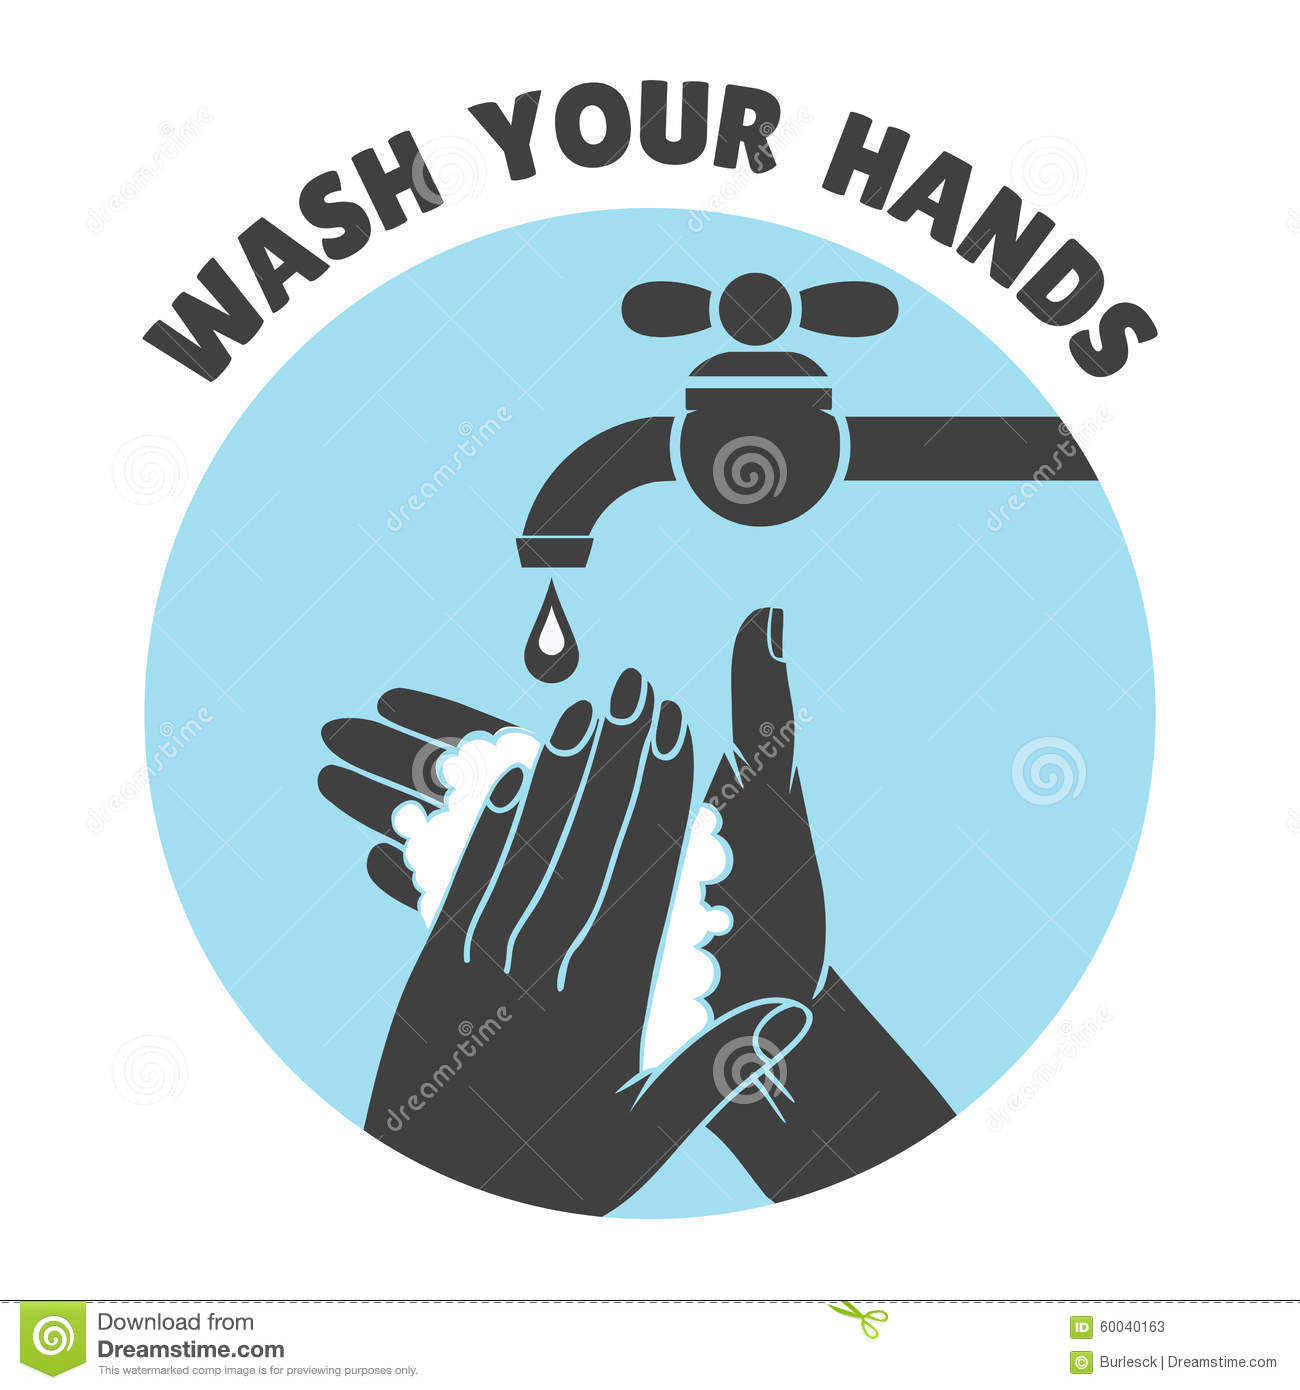 Wash your hands bathroom sign - Wash Your Hands Or Safe Hand Washing Vector Symbol Water And Clean